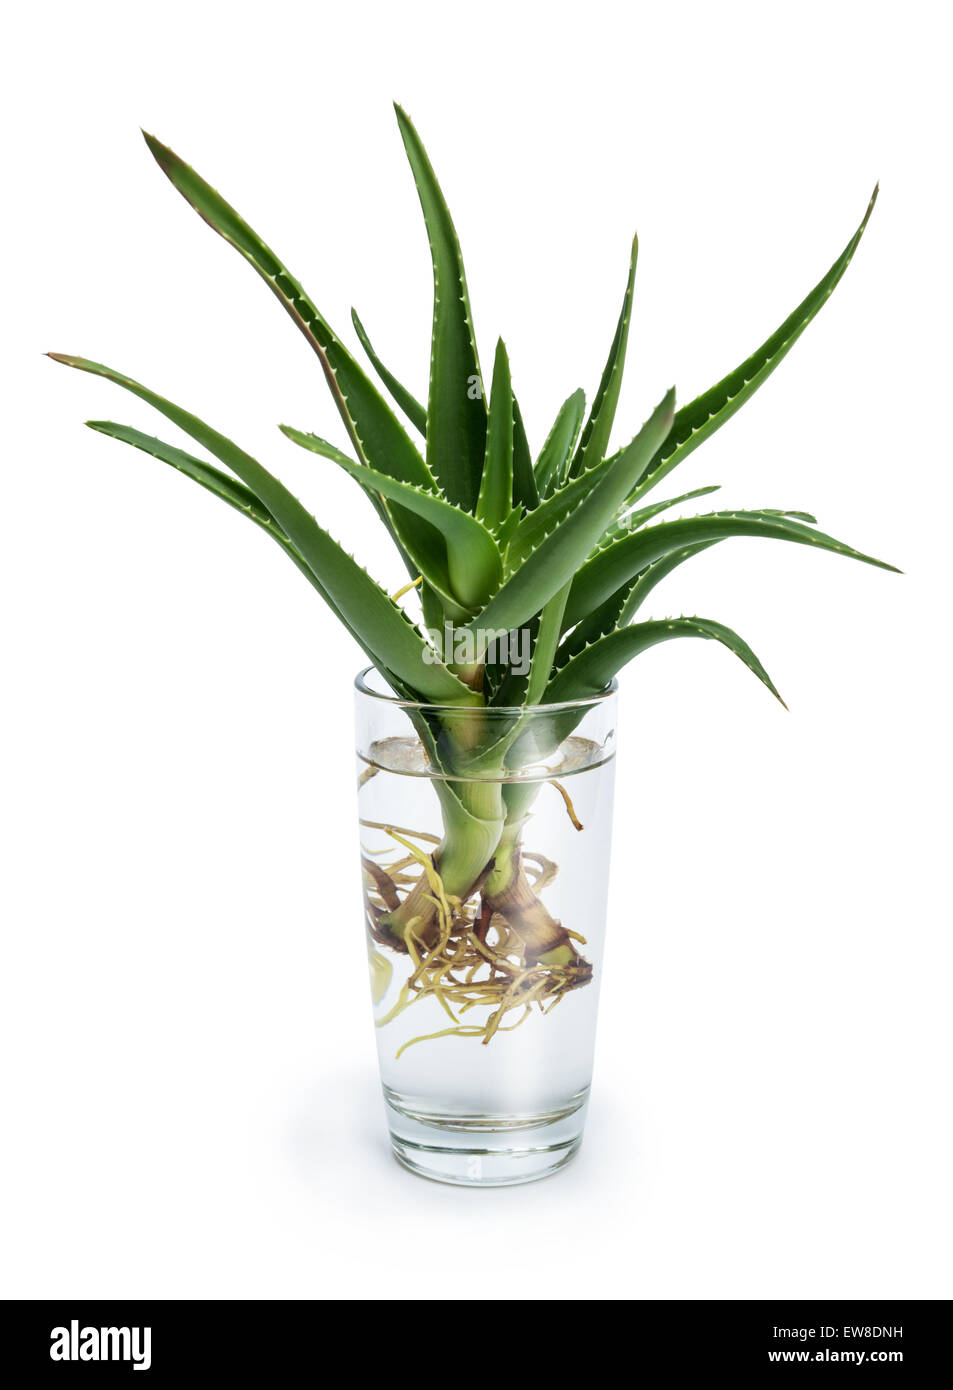 Aloe vera is a stemless succulent plan. Sprouting roots in a glass of water - Stock Image